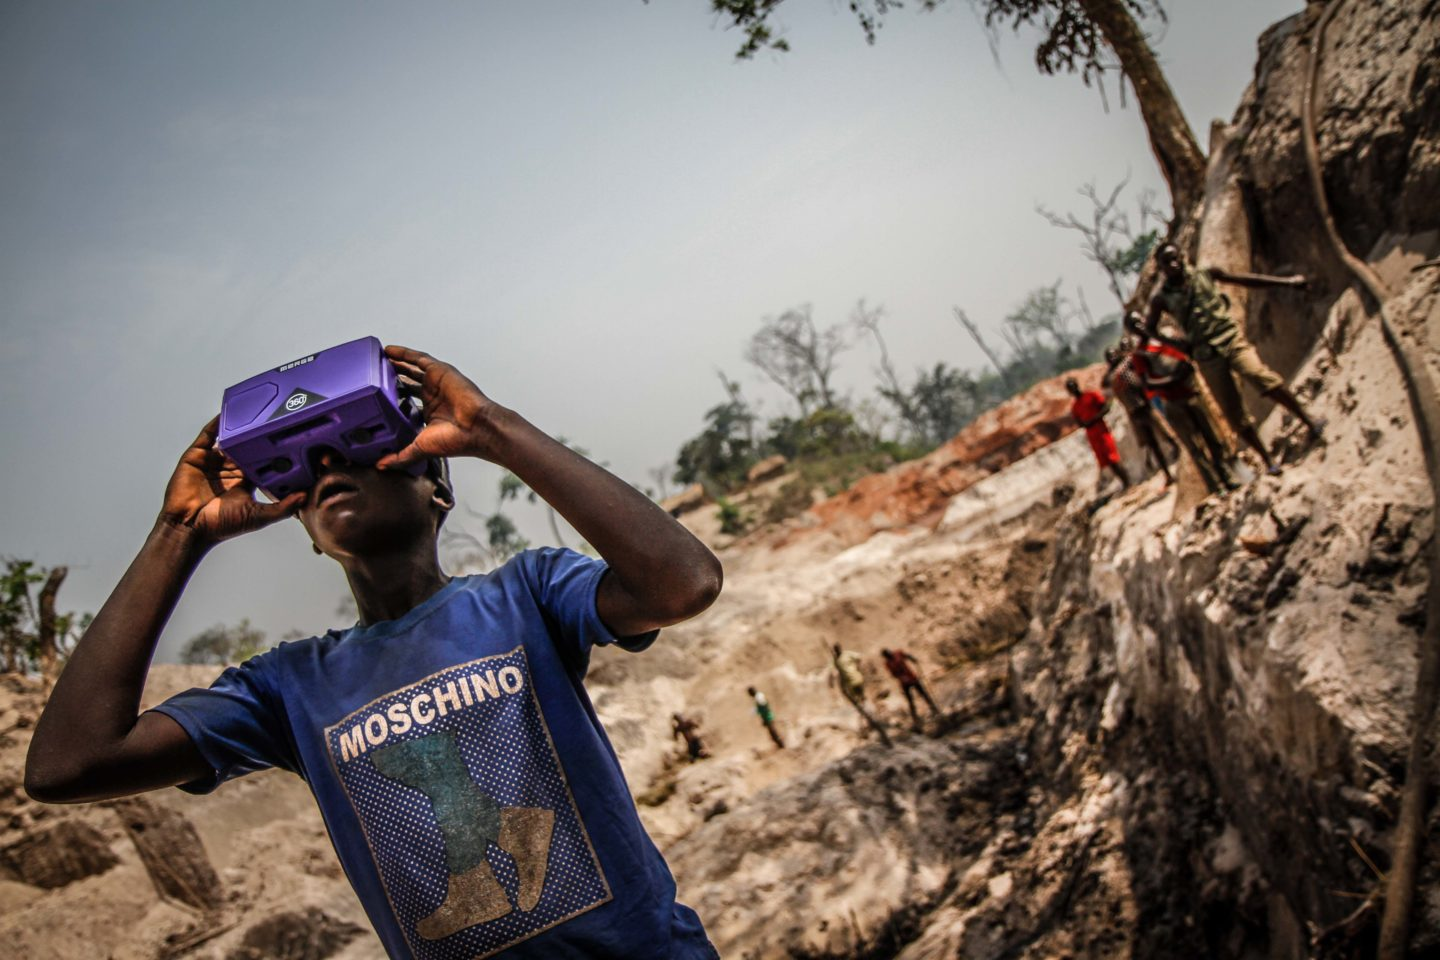 360 video: witness the lives of children in war-torn Central African Republic 8